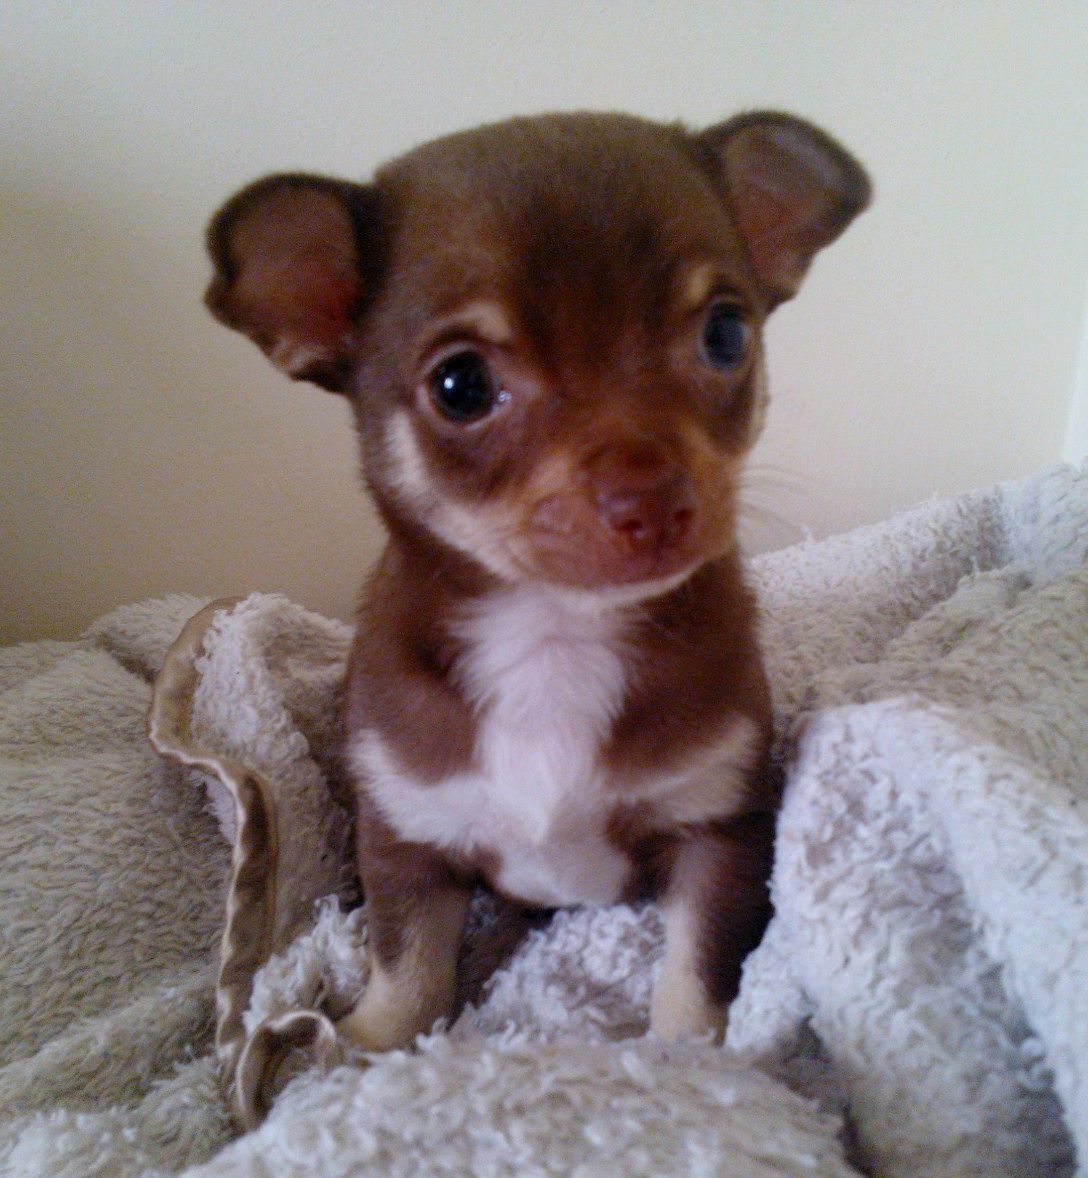 Chocolate Chihuahua Puppies Short Hair Dogs For Sale Hair Style Your Reference Chihuahua Puppies Cute Baby Animals Cute Chihuahua